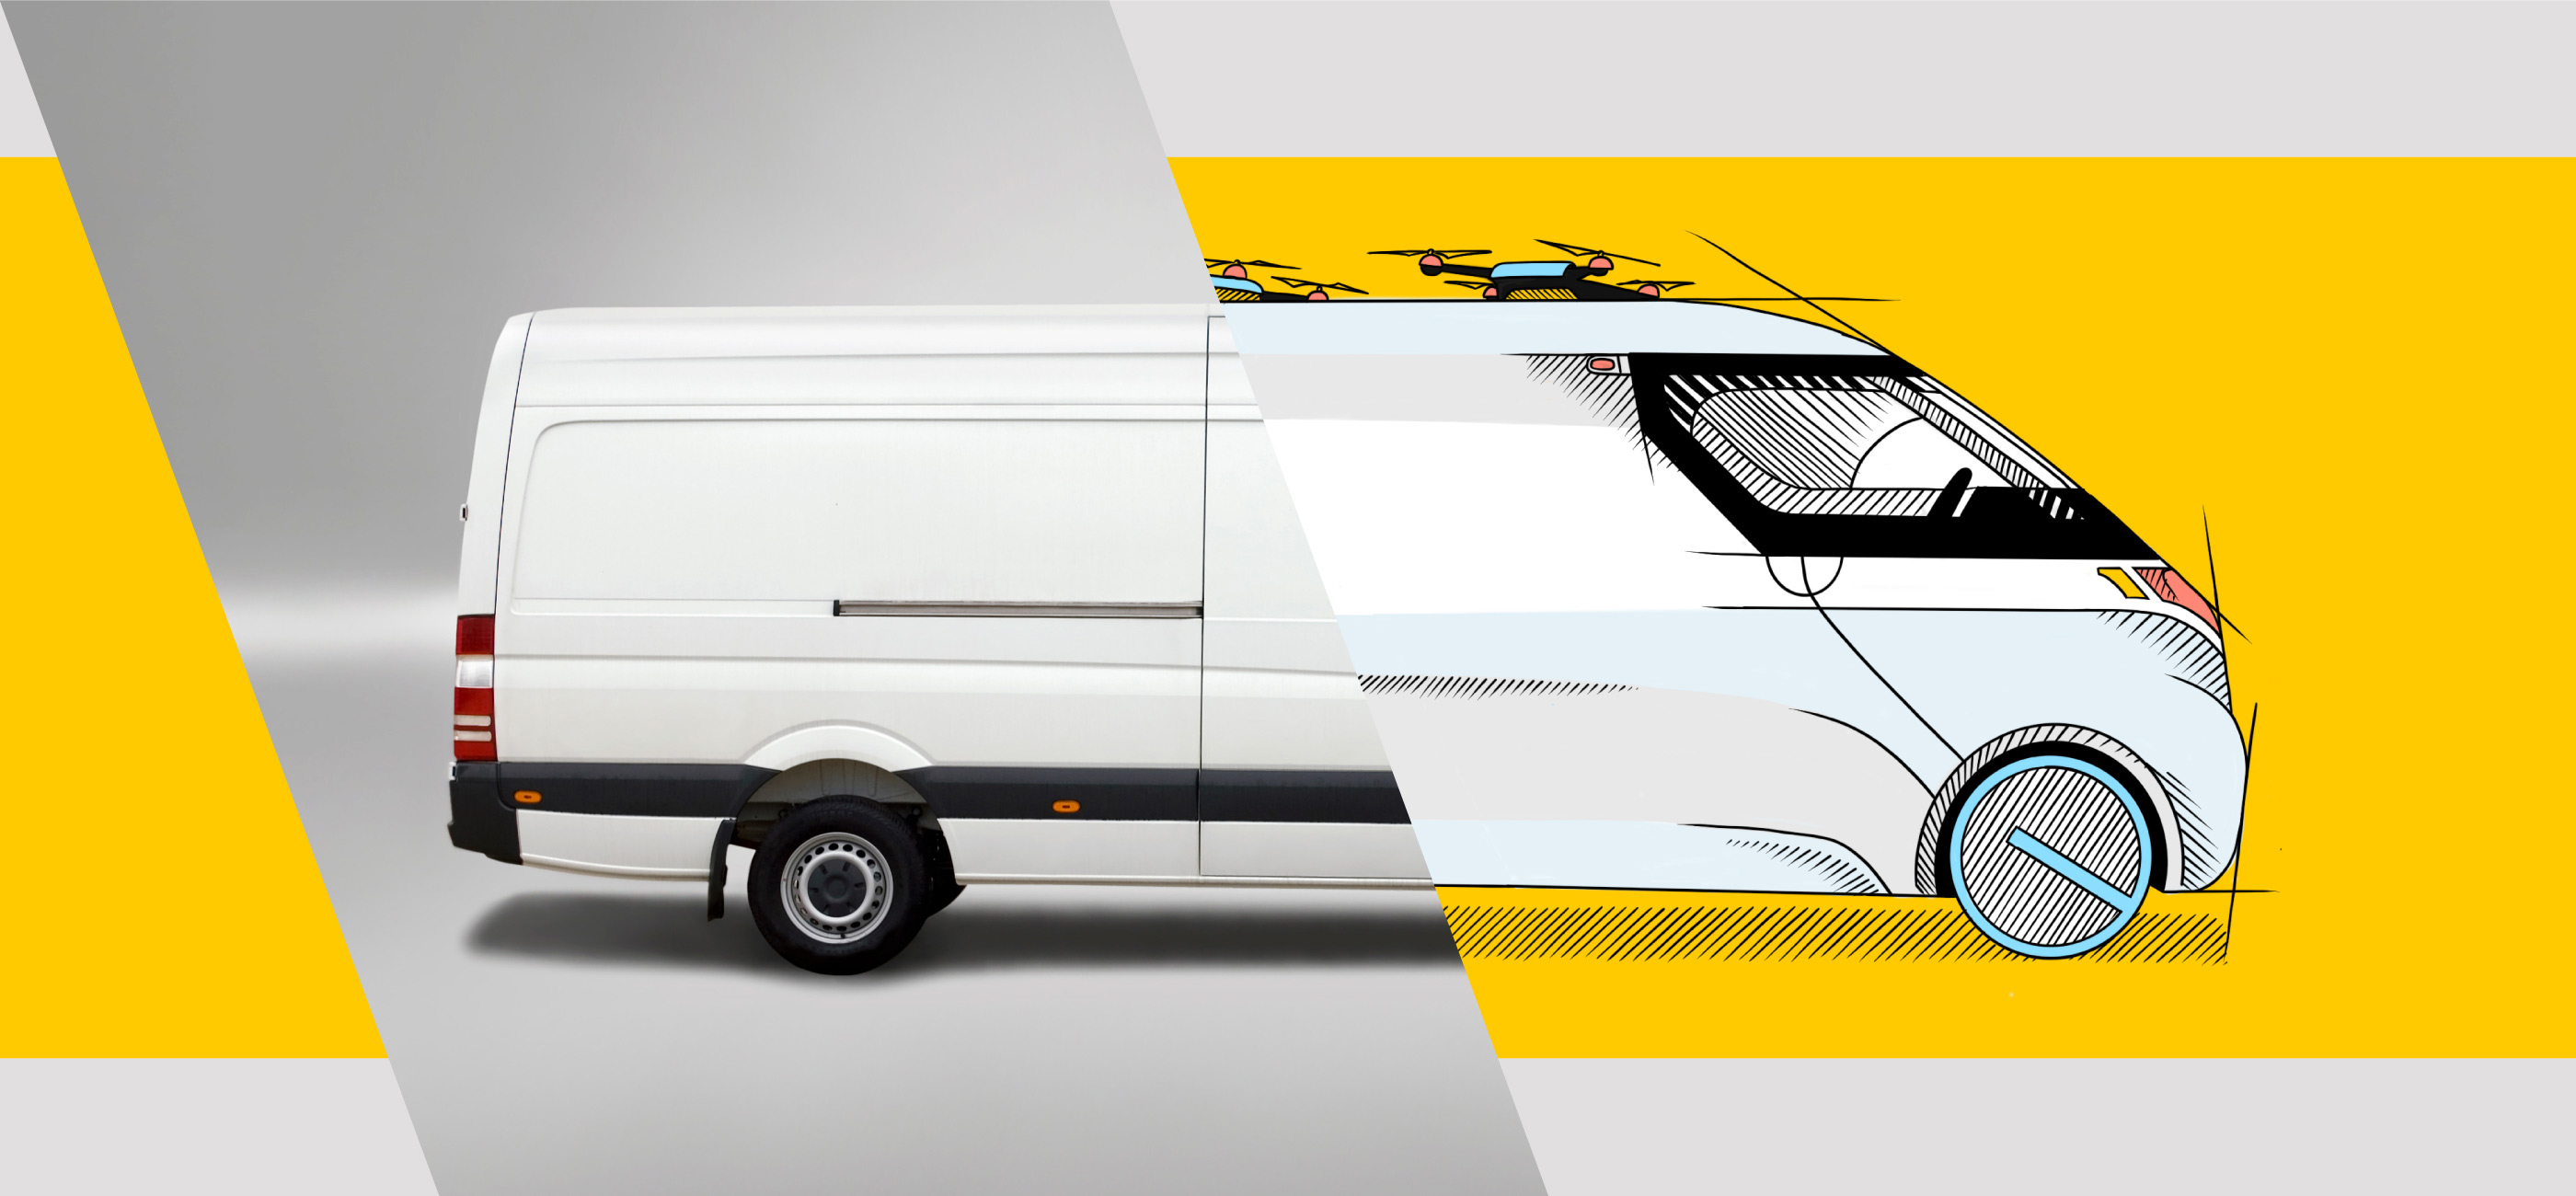 Image of a white delivery van, half of the image is a photo and the other is a drawing on yellow background